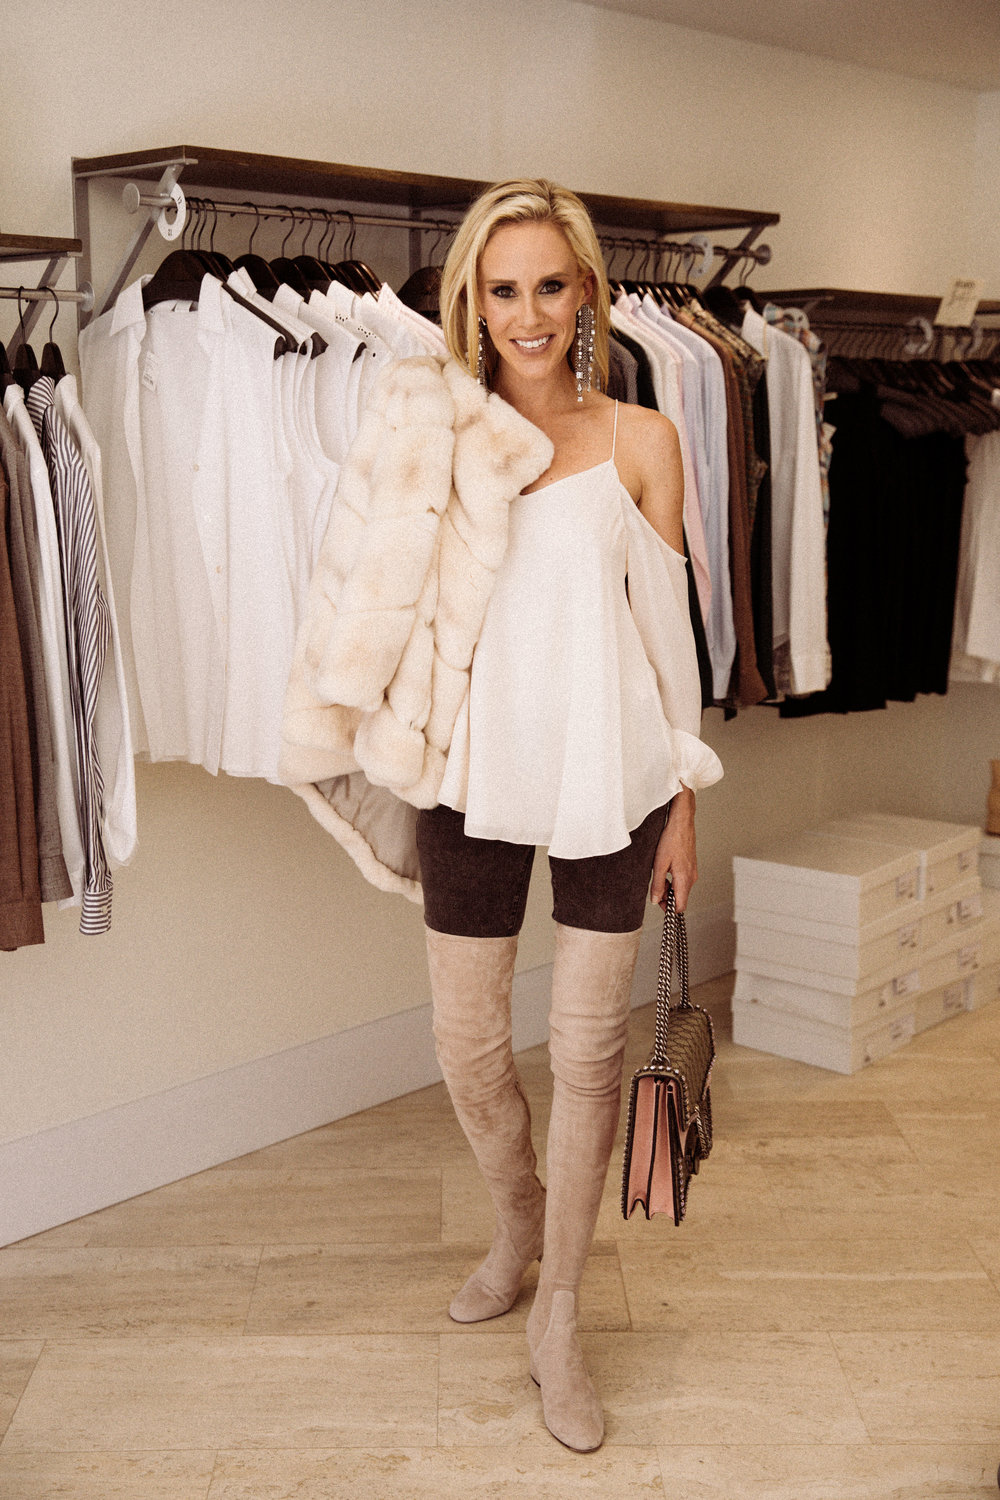 - Because I for one, know I am so excited about WORKING my over the knee suede boots, western mid calf boots, and off white kitten heeled booties when that thermometer gets below 70 degrees.